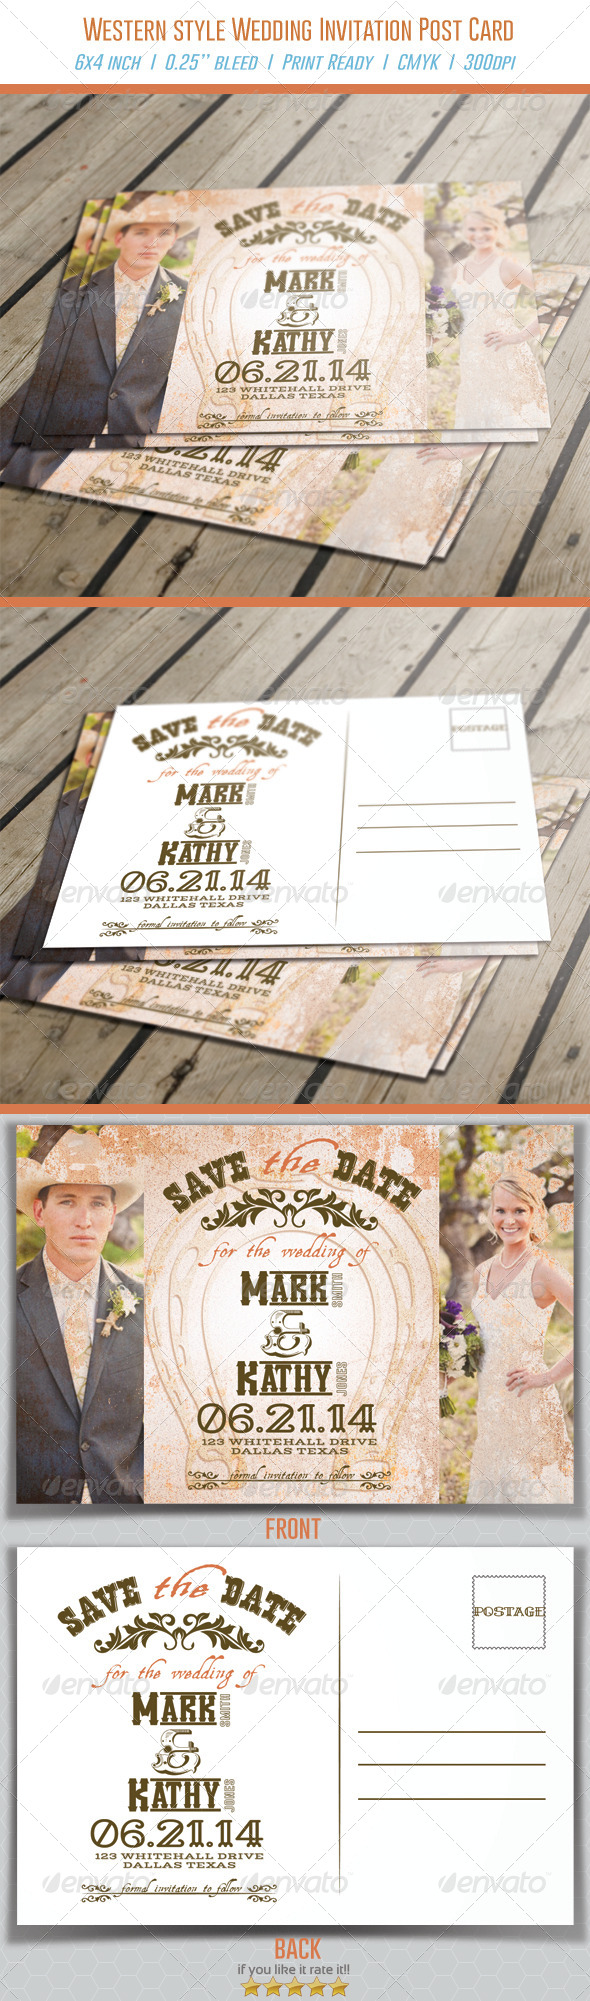 Western Style Wedding Invitation Post Card